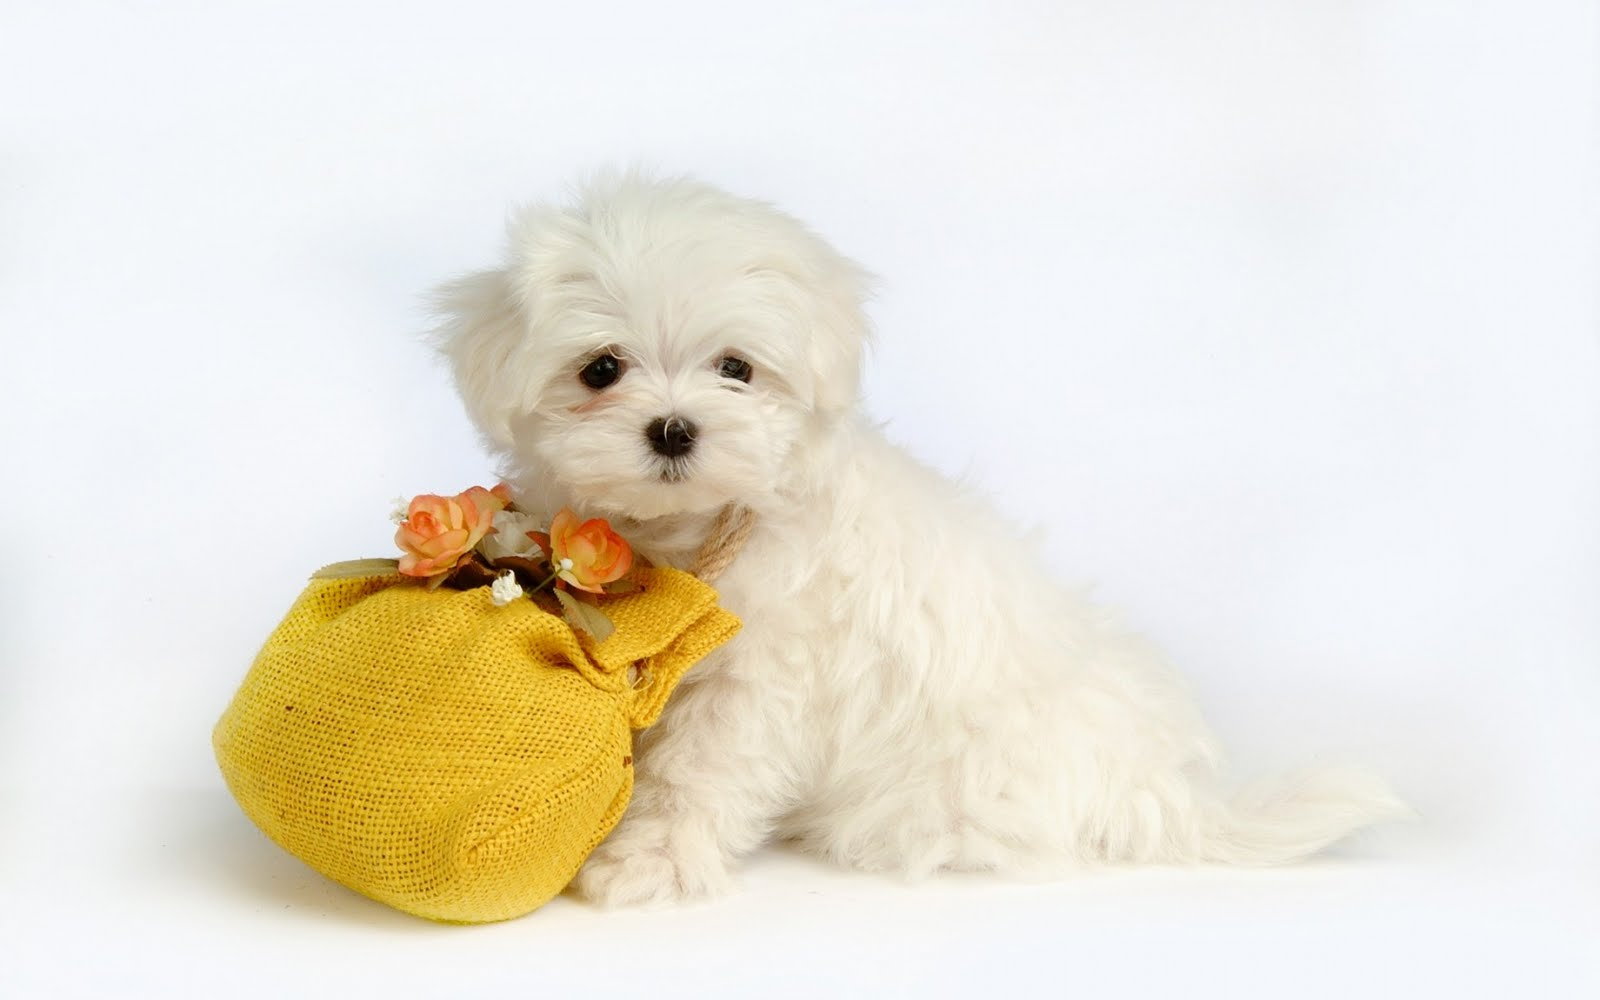 cute puppy wallpaper wide 1680x1050 hd desktop wallpaper